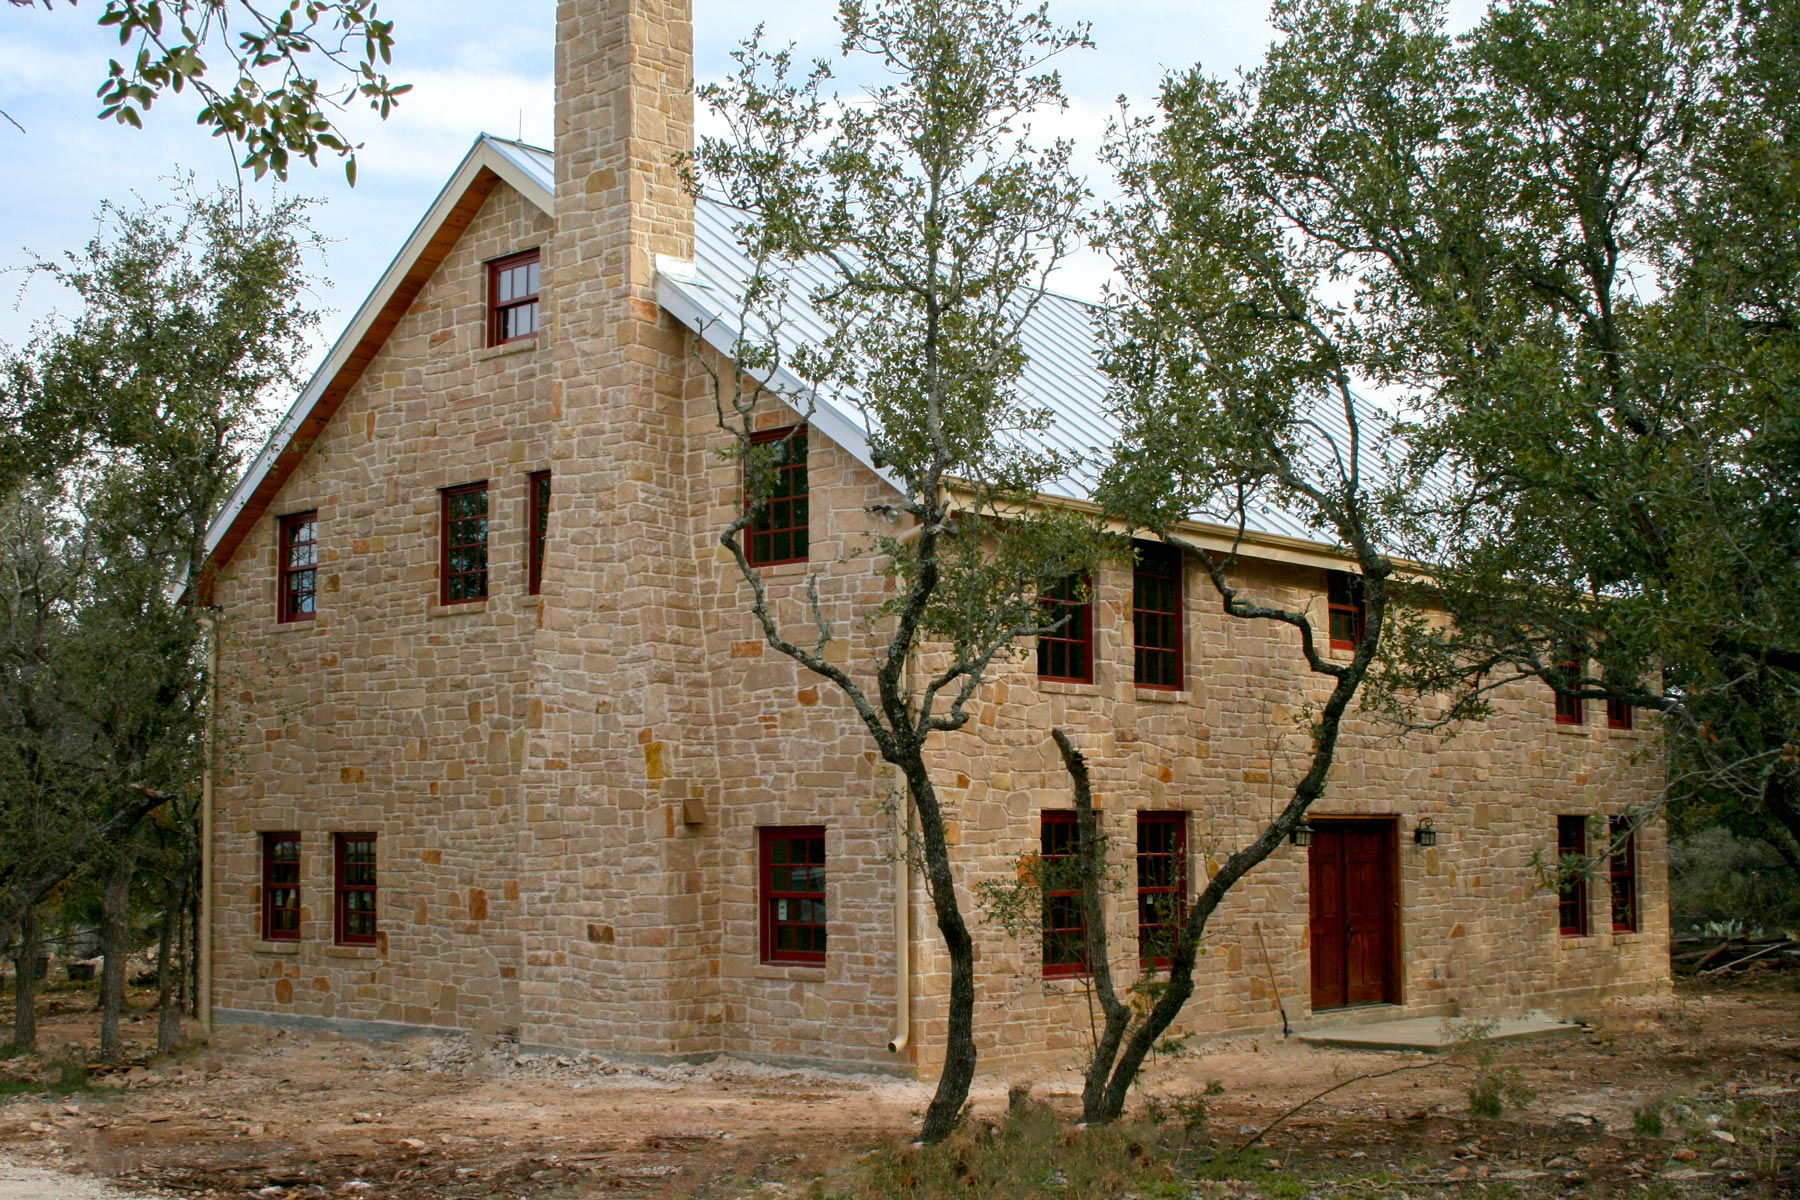 Fullsize Of Rustic Country Home